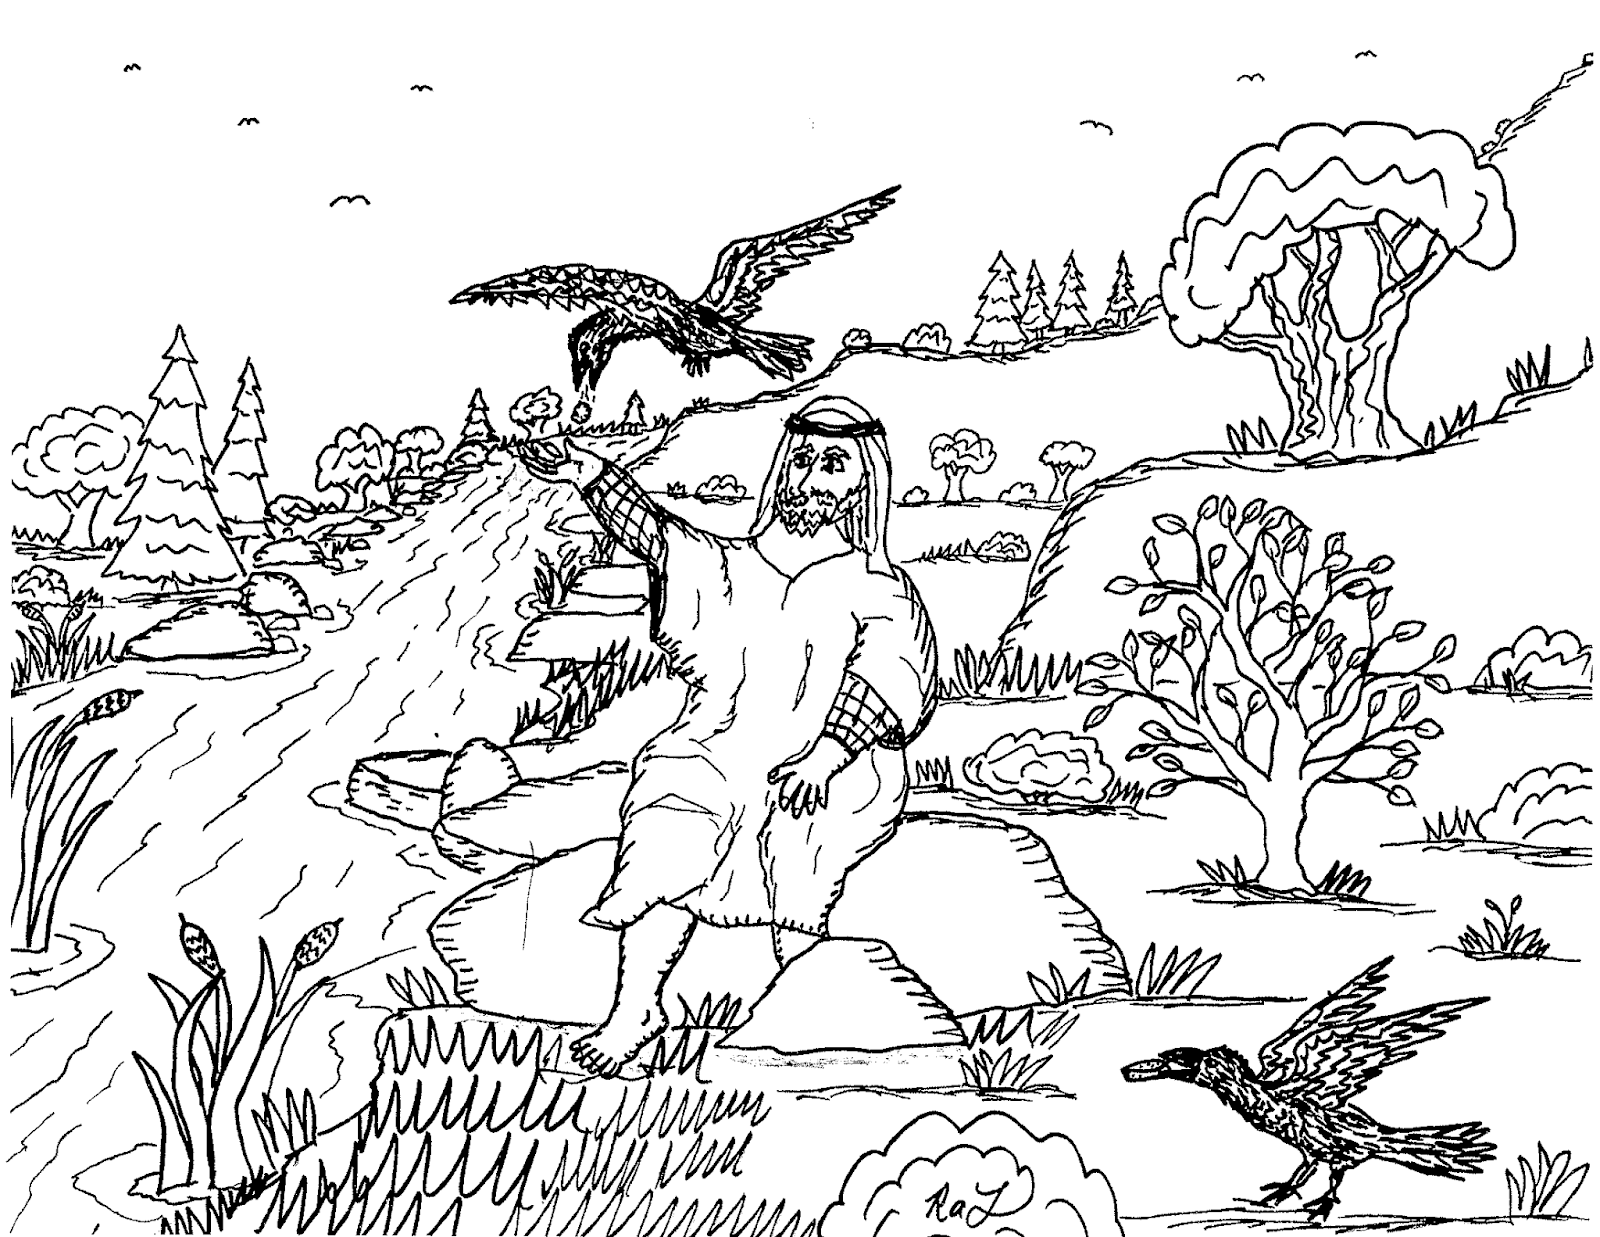 Robin's Great Coloring Pages: Elijah Fed By The Ravens